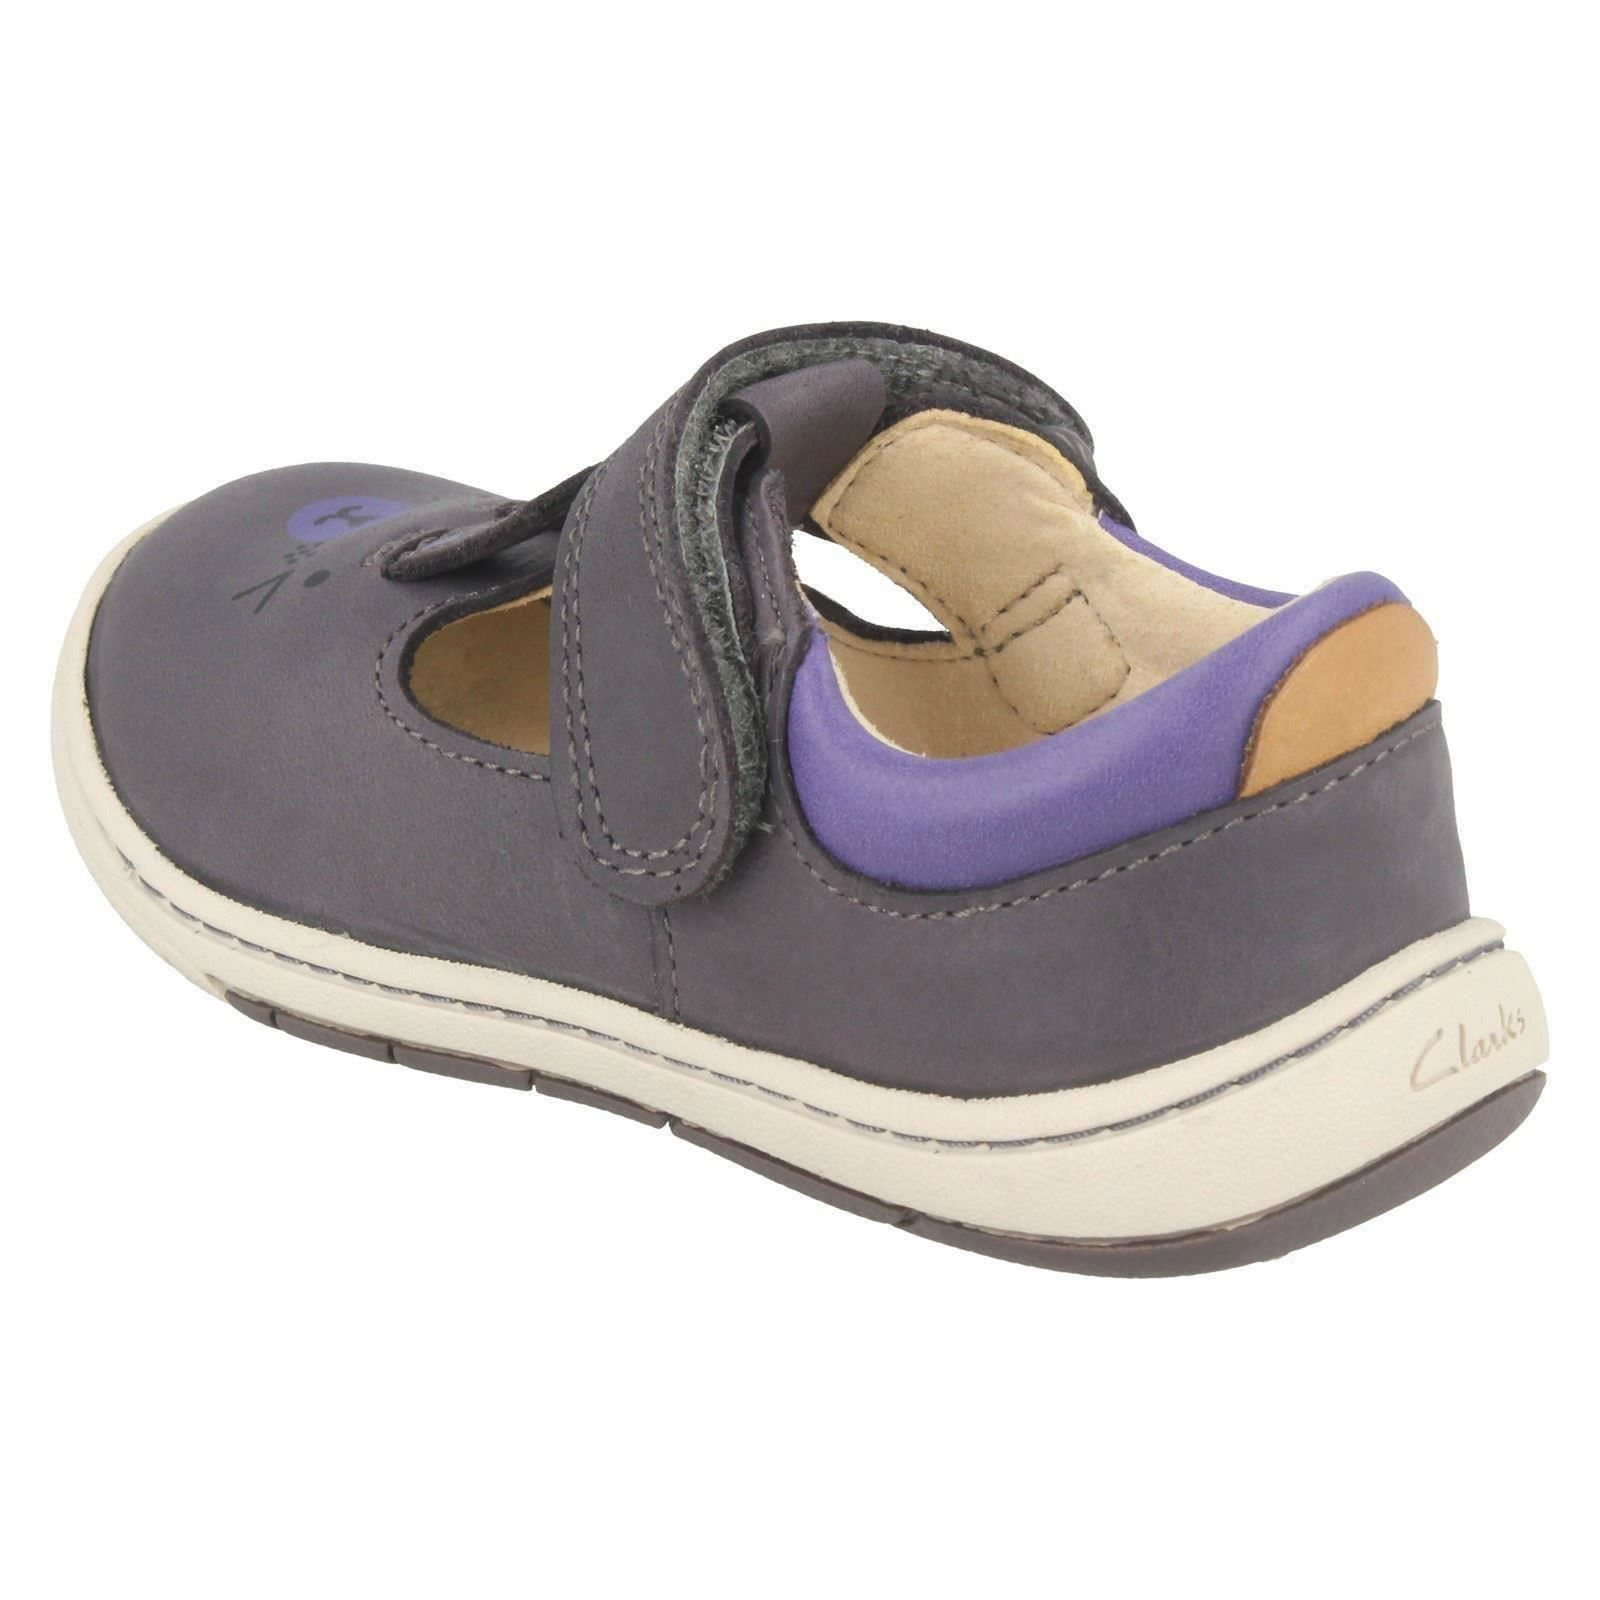 Girls Clarks Casual First Shoes With Rabbit Design Amelio Glo